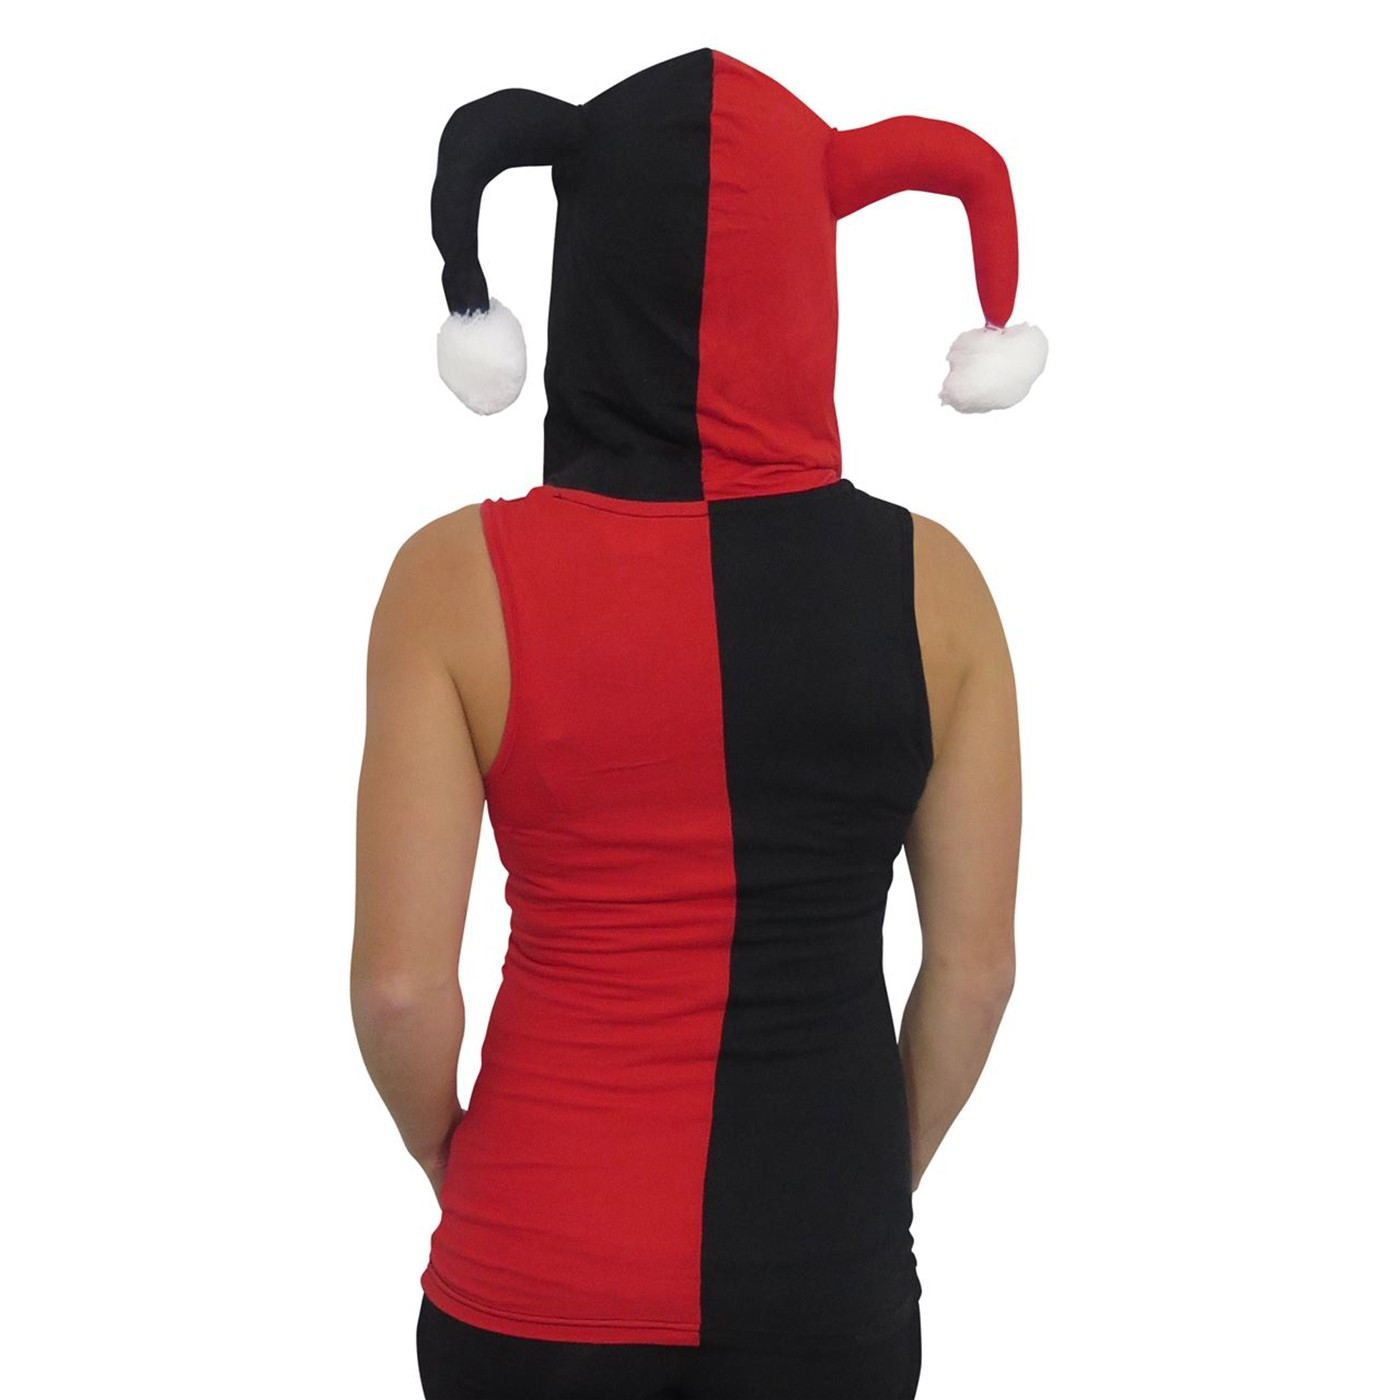 Harley Quinn Hooded Jester Tank Top